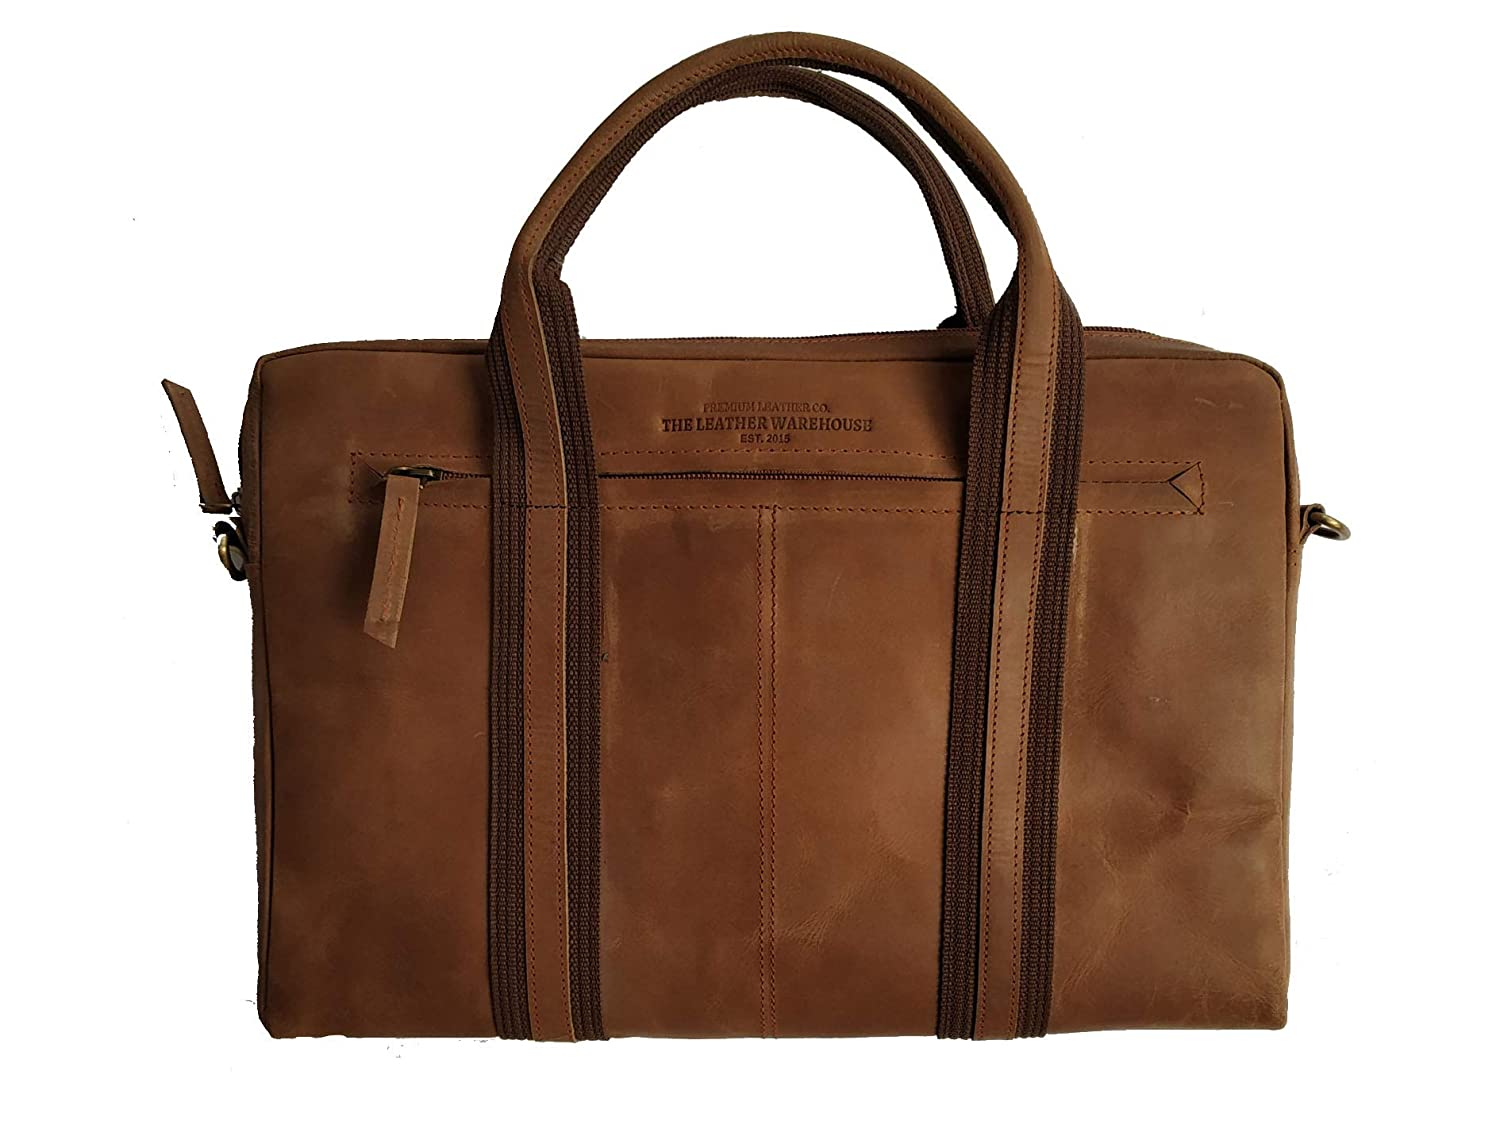 f2bce75222ad Sleek Leather Laptop Bags | The Shred Centre